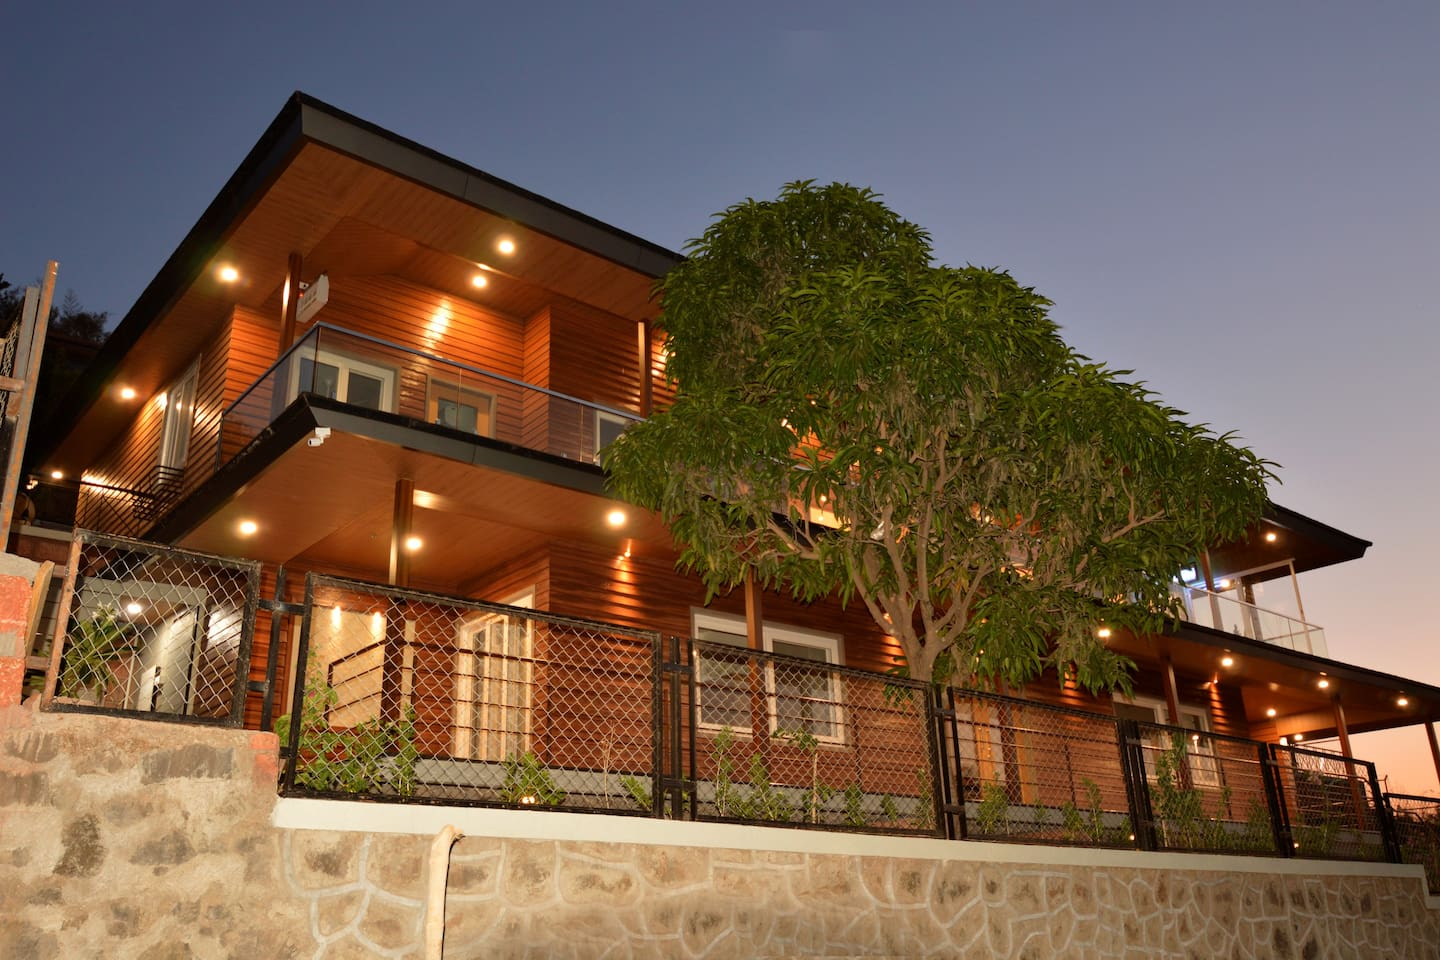 Durgdip Villa, Luxury in the heart of nature.